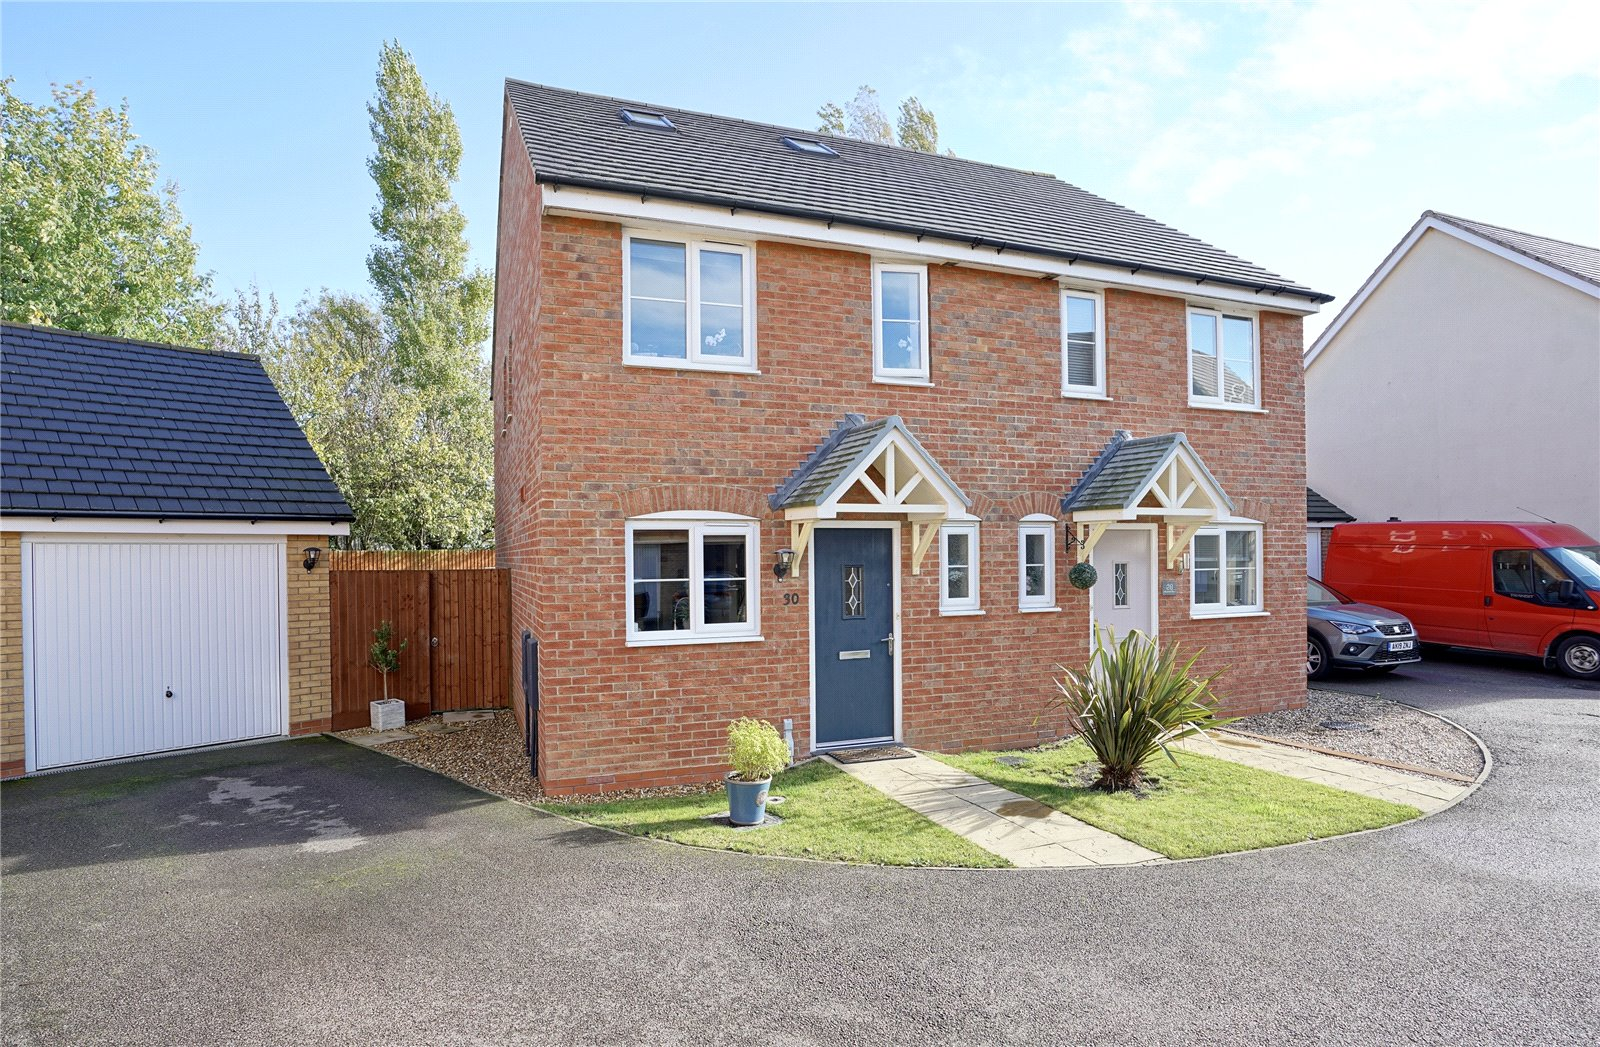 3 bed house for sale in Papworth Everard, CB23 3AE, CB23